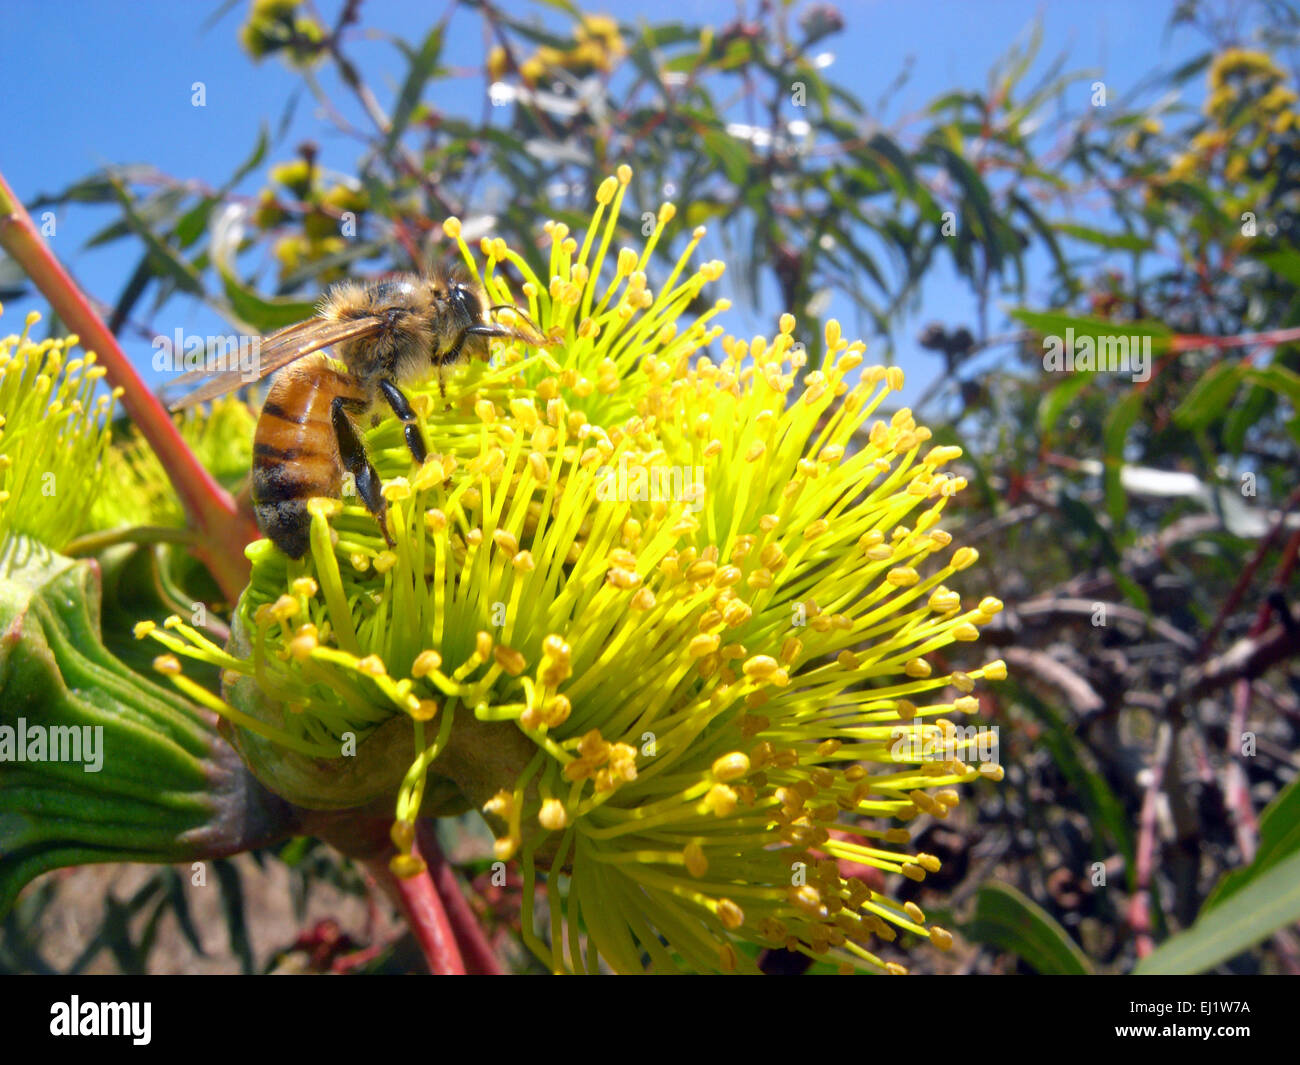 Bee (Apis mellifera) collecting nectar from Illyarrie or red-capped gum (Eucalyptus erythrocorys), Perth, Western - Stock Image